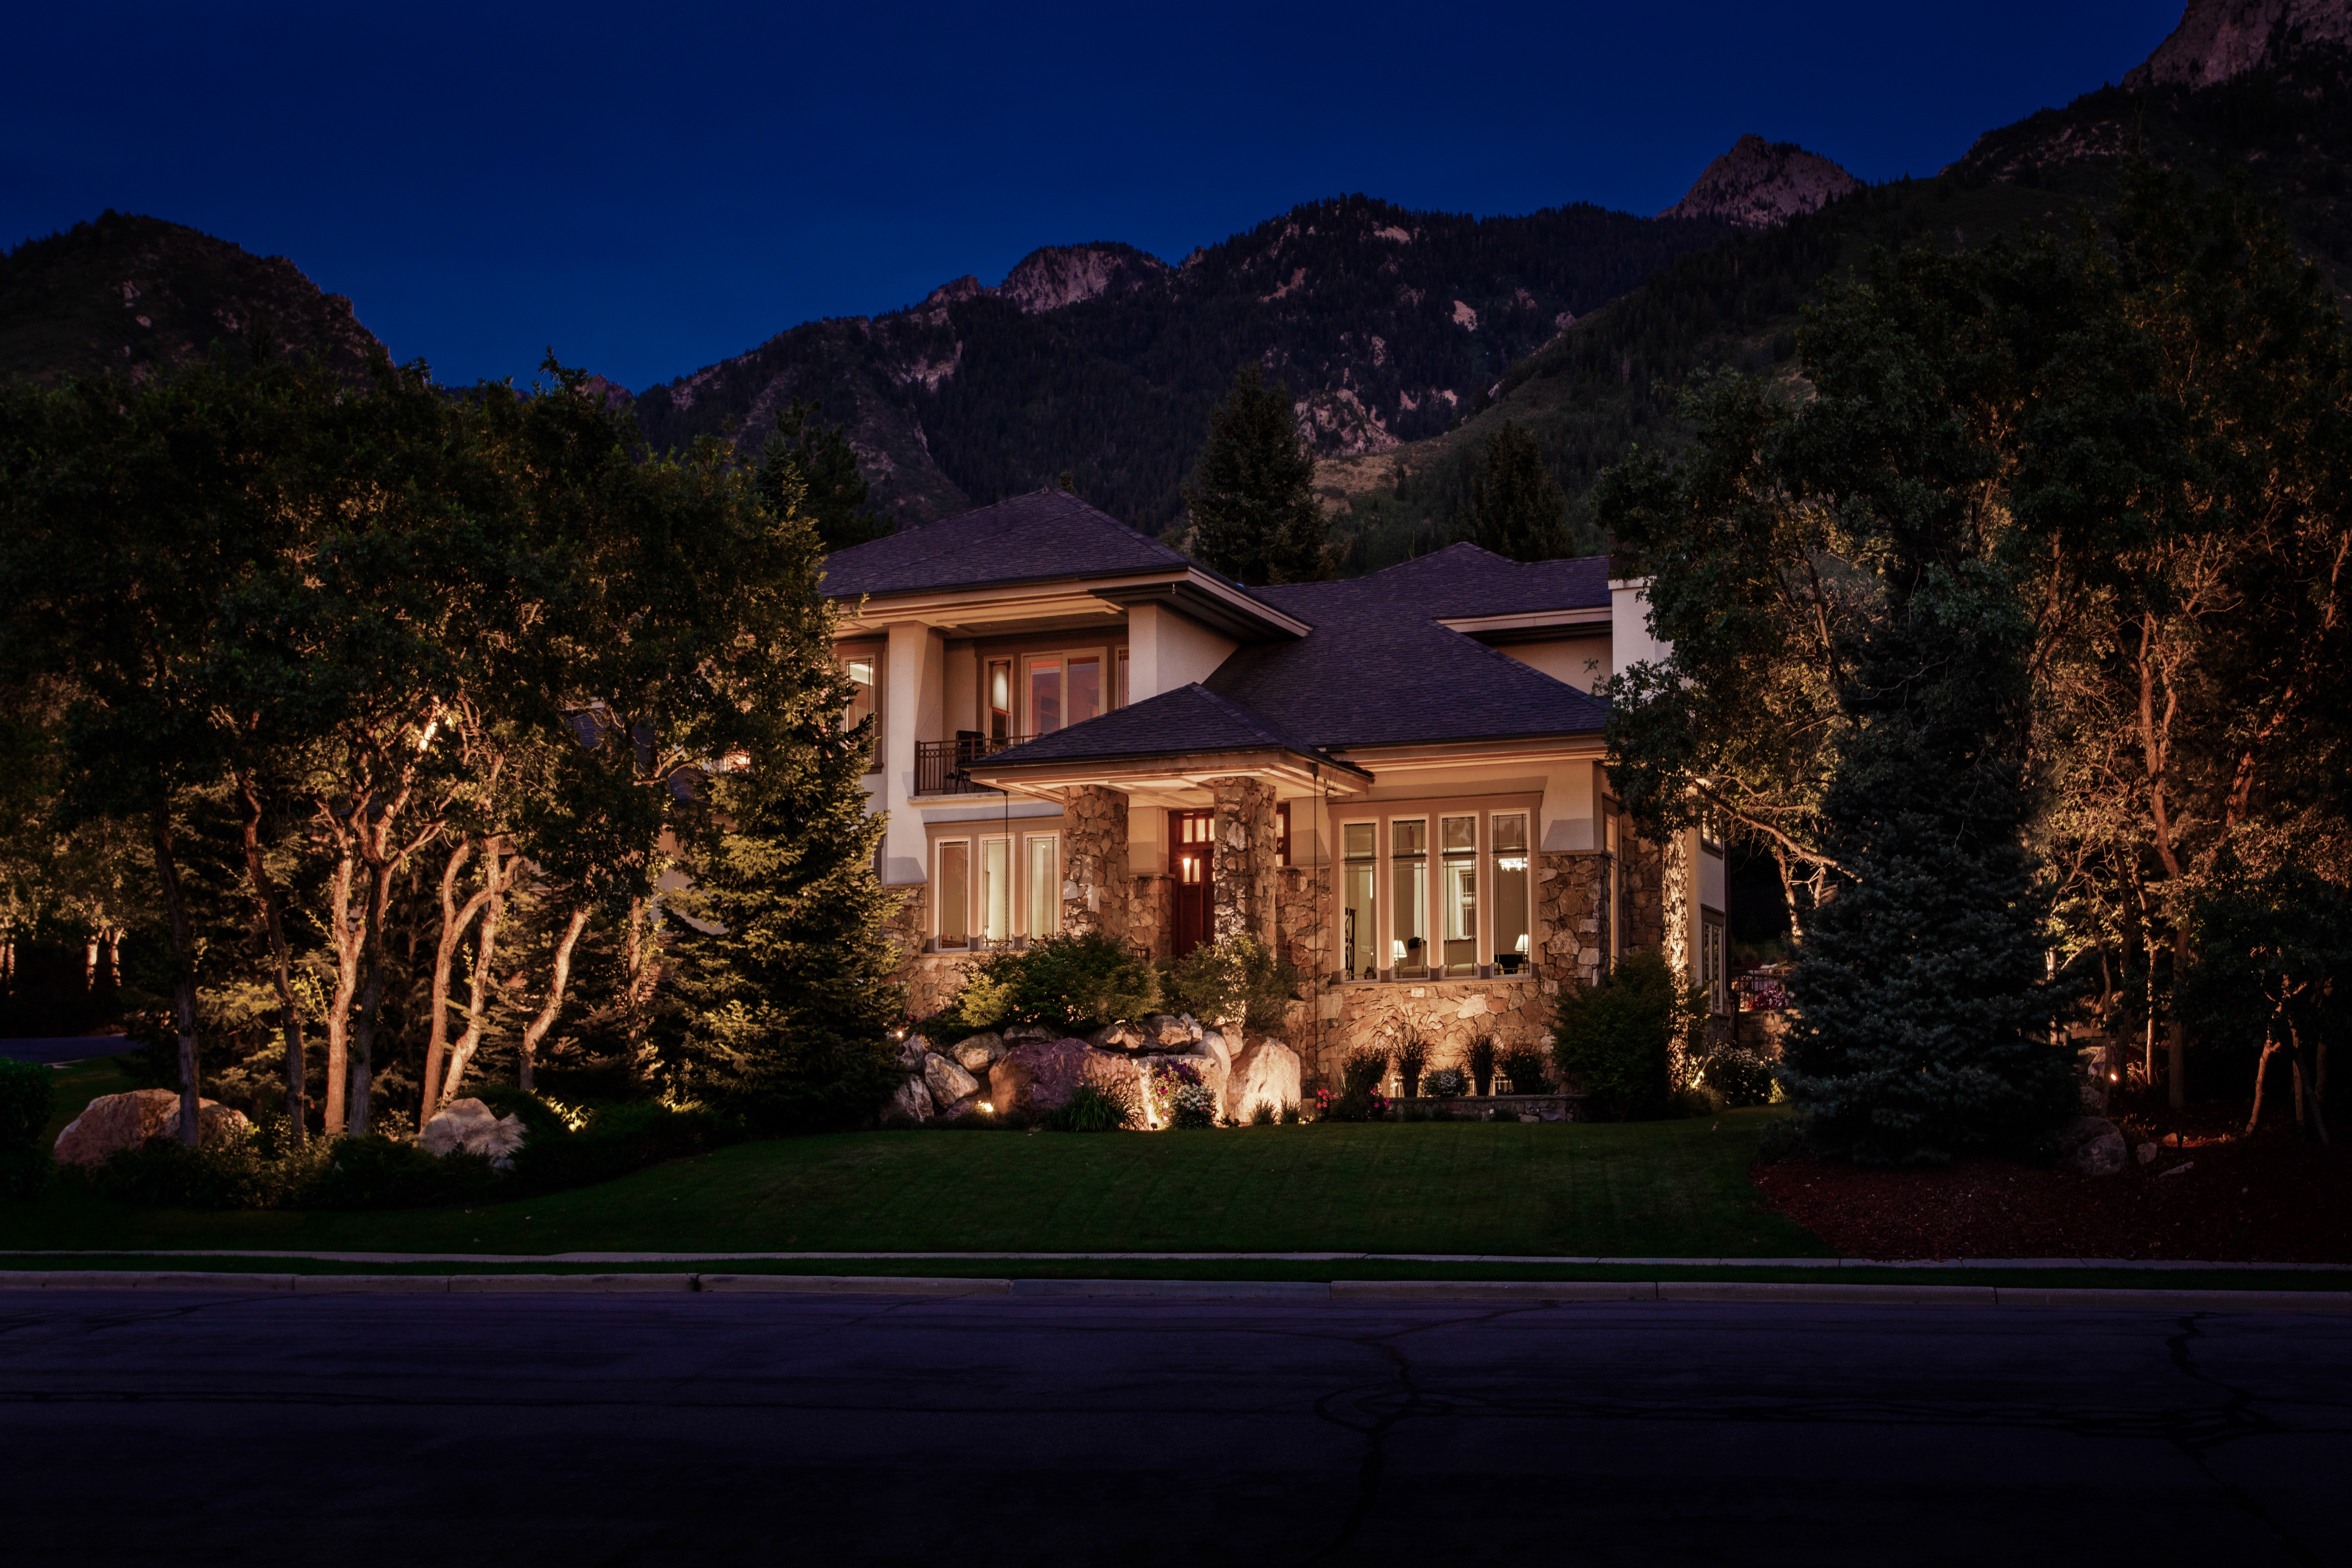 The Bright Ideas Blog Landscape Lighting Pro Of Utah Low Voltage House Wiring There Is A Lot That Goes Into Technical Side How System Works And Operates Recently Client Asked Me Specific Question